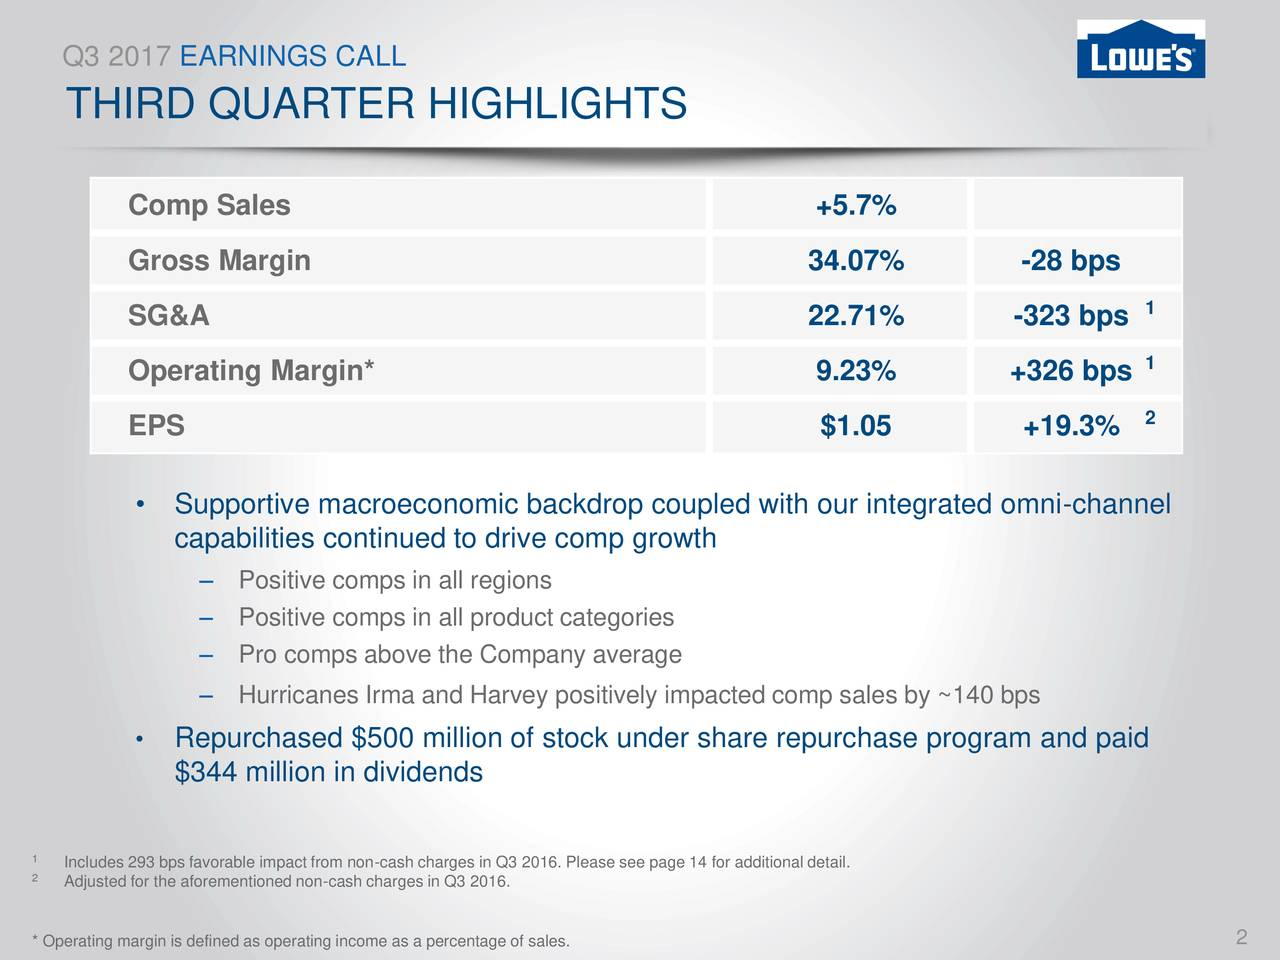 Lowes Stock Quote Lowe's Companies Inc2017 Q3  Results  Earnings Call Slides